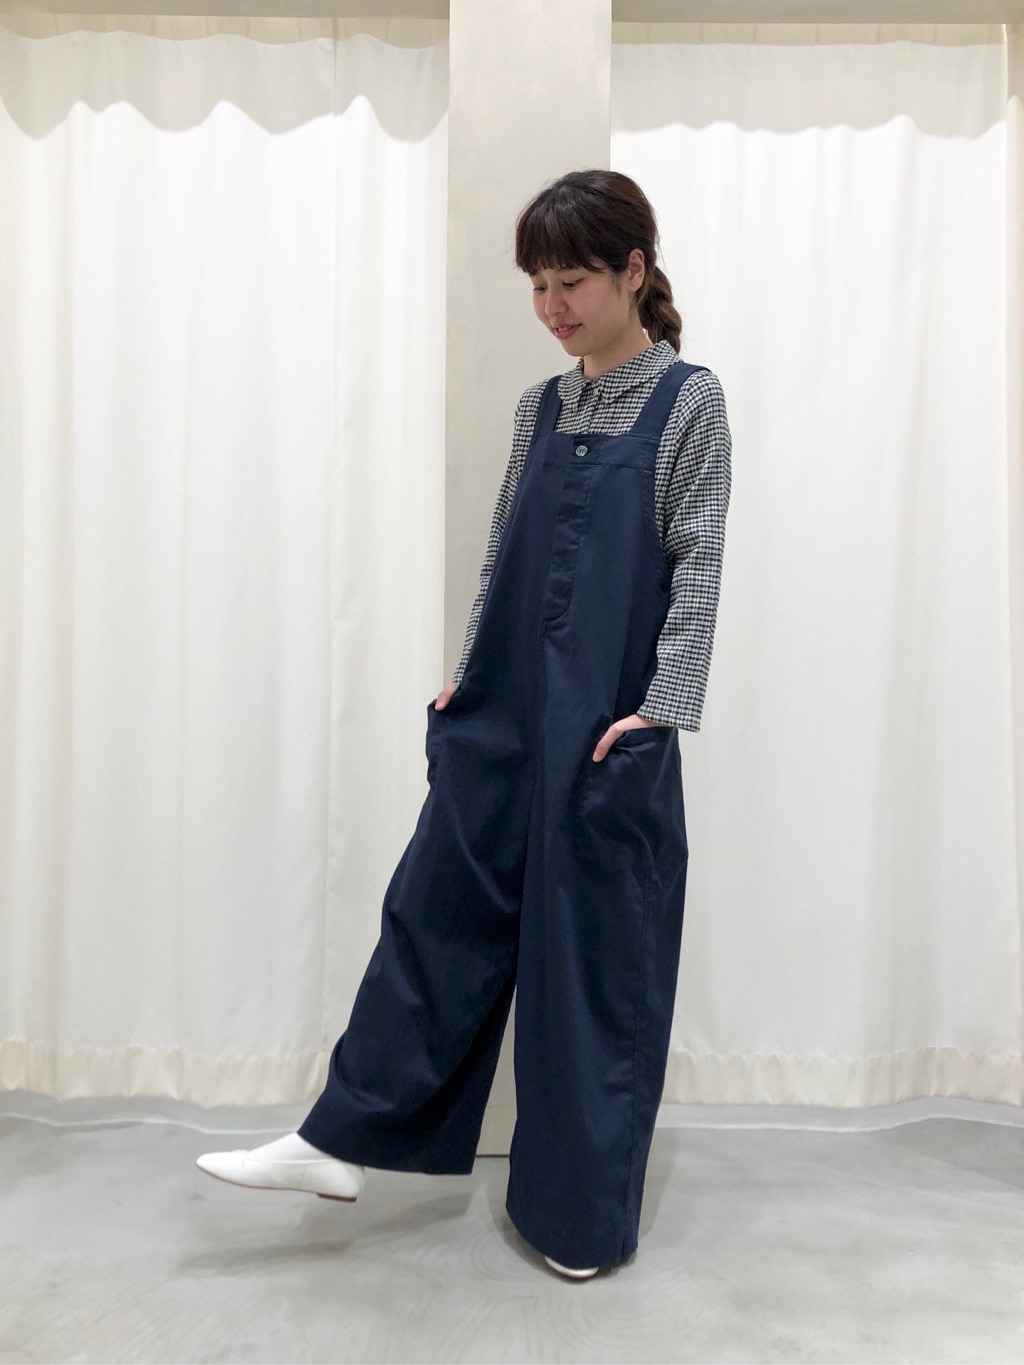 AMB SHOP CHILD WOMAN CHILD WOMAN , PAR ICI ルミネ横浜 身長:160cm 2020.05.06